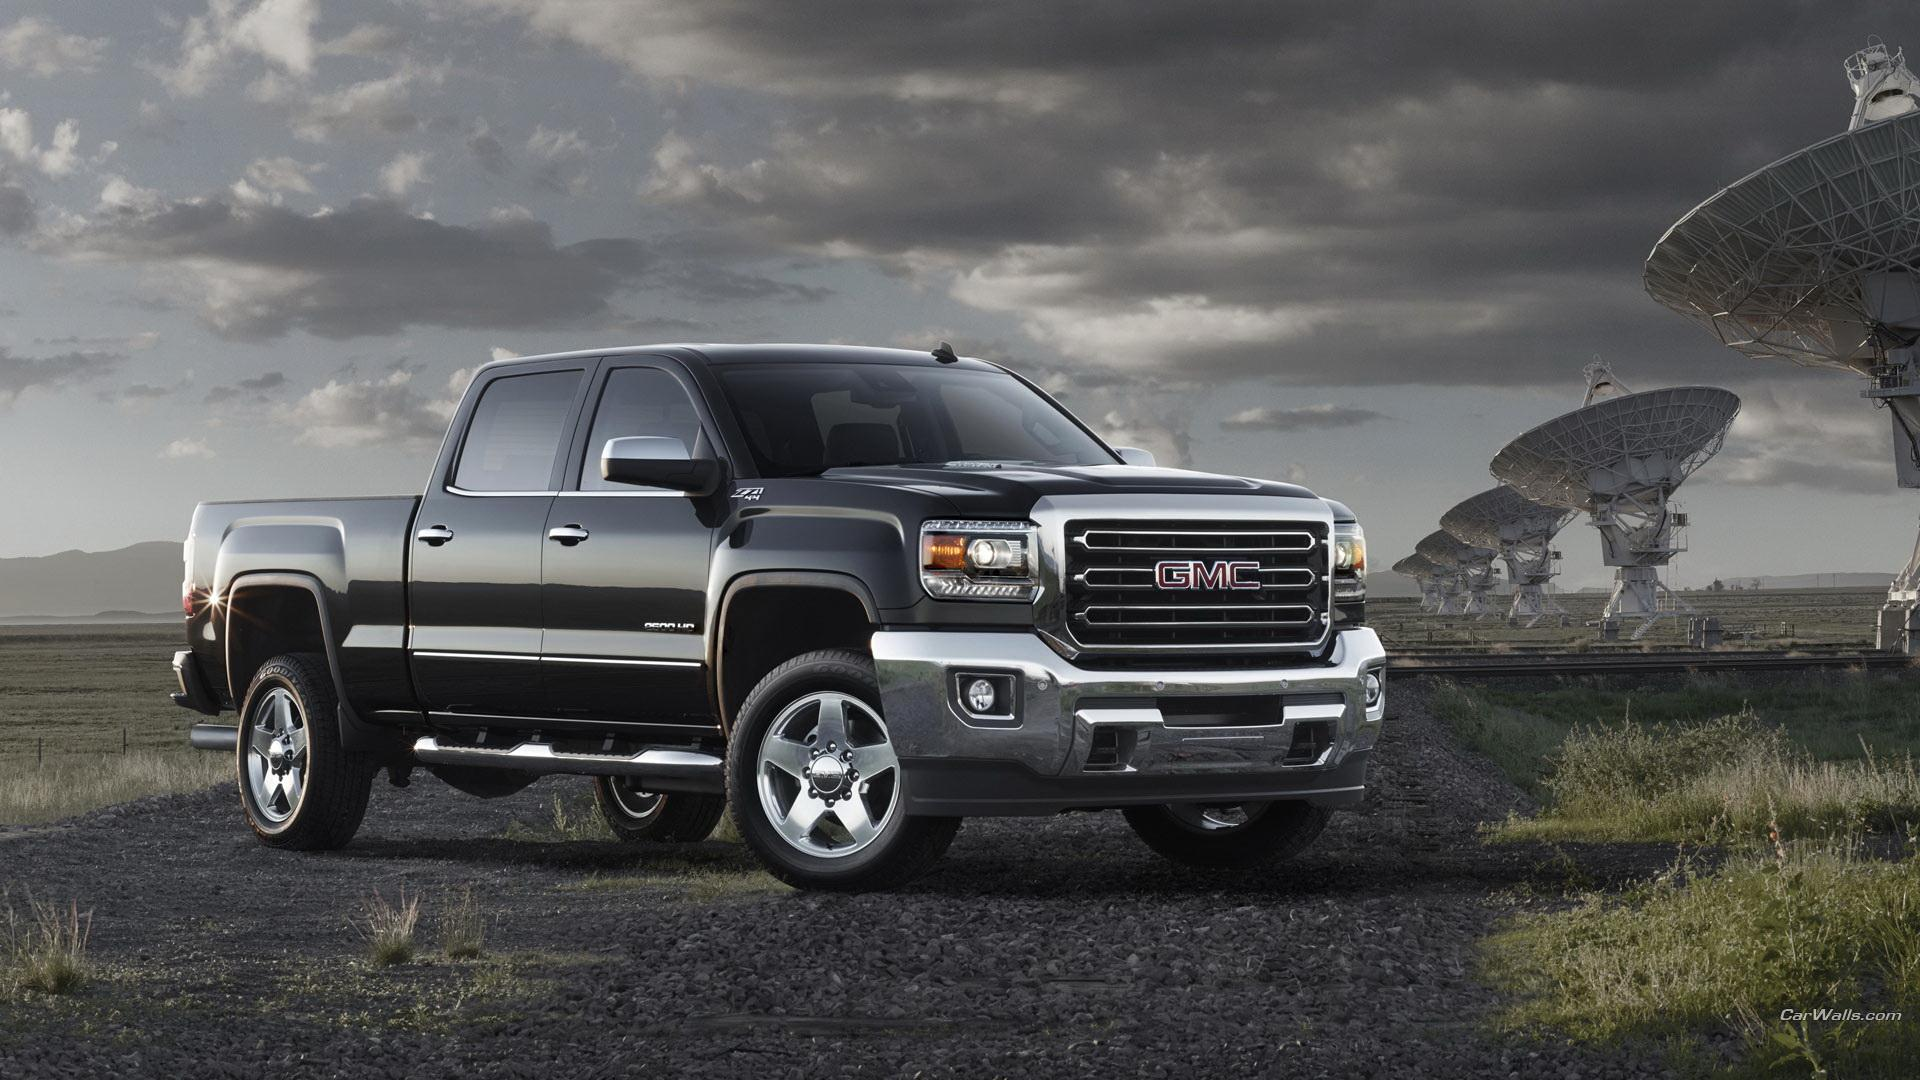 GMC Sierra HD Wallpapers #11063| Car Pictures Website